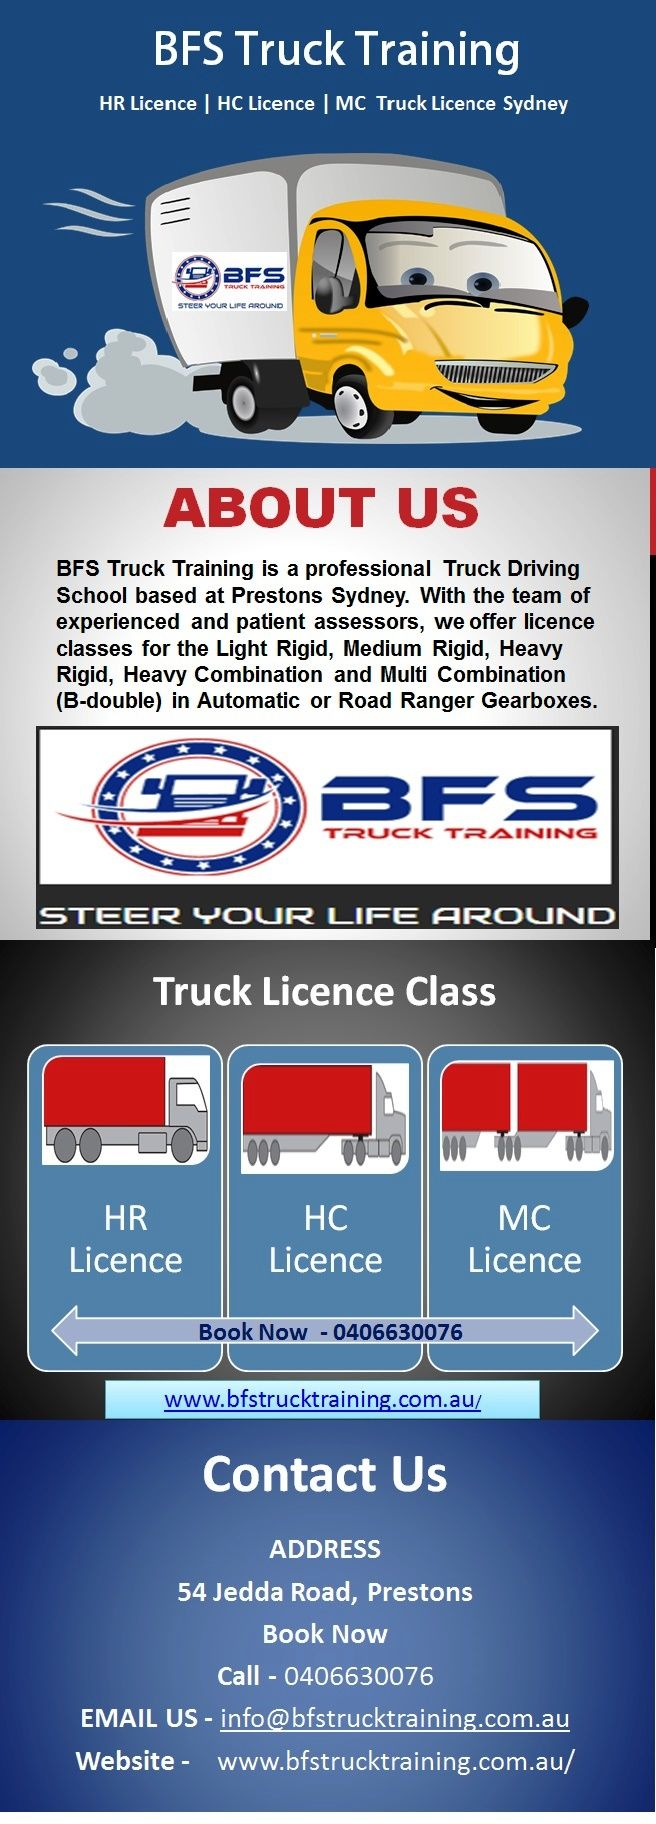 Looking for HR licence in Sydney? Contact BFS Truck Training for best HR licence training and required things. Make a booking now.